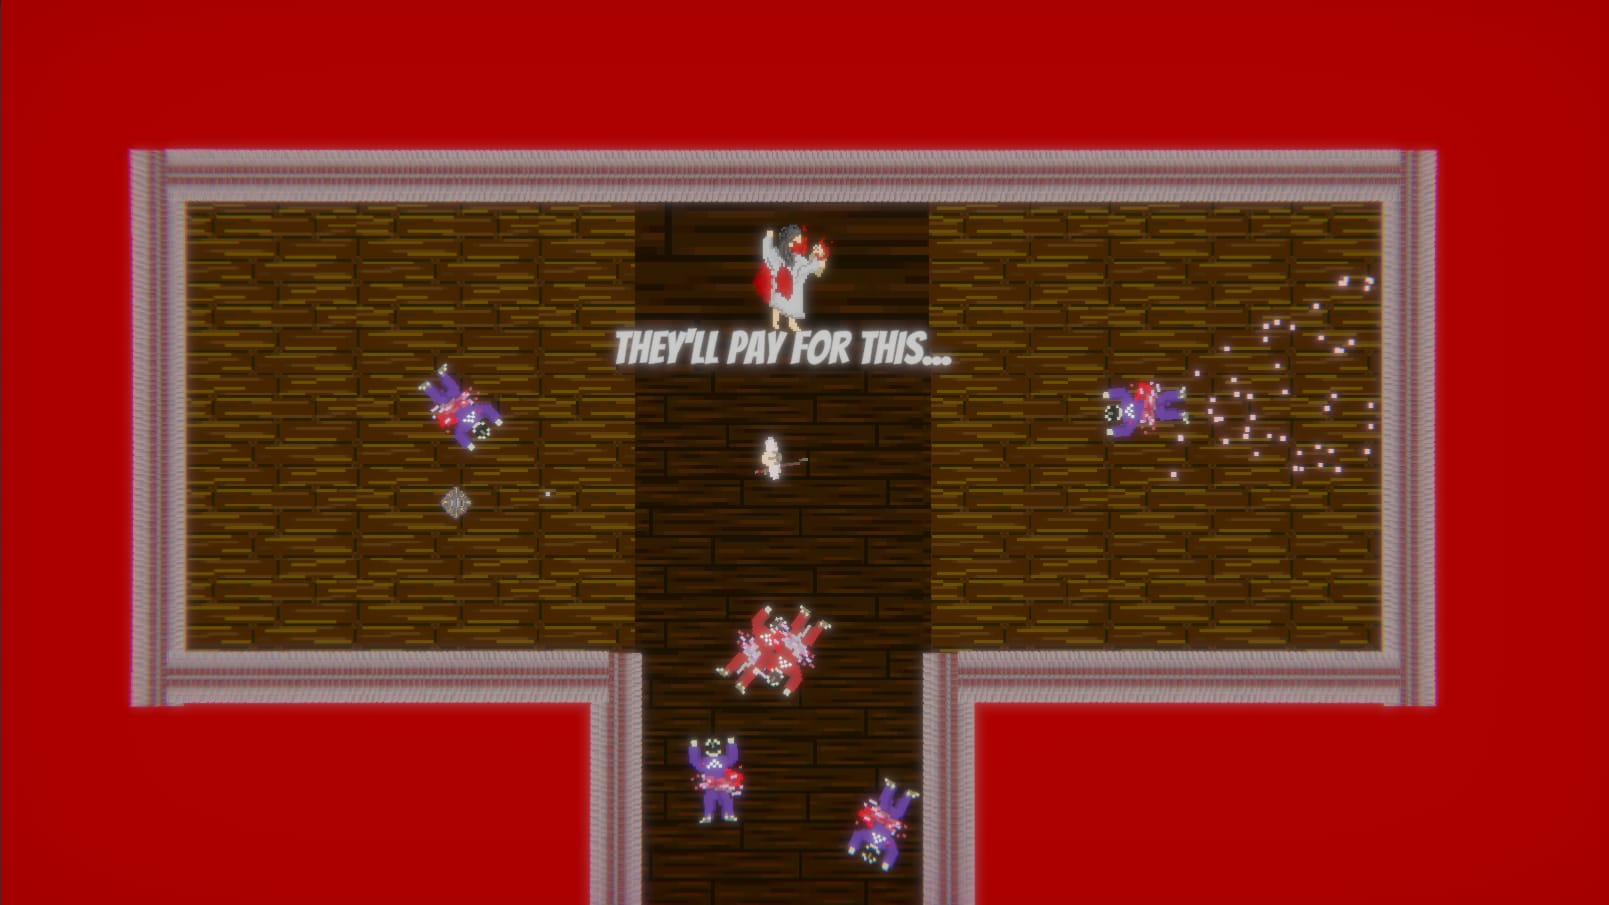 Screenshot of game showing cartoon player surrounded by dead characters.